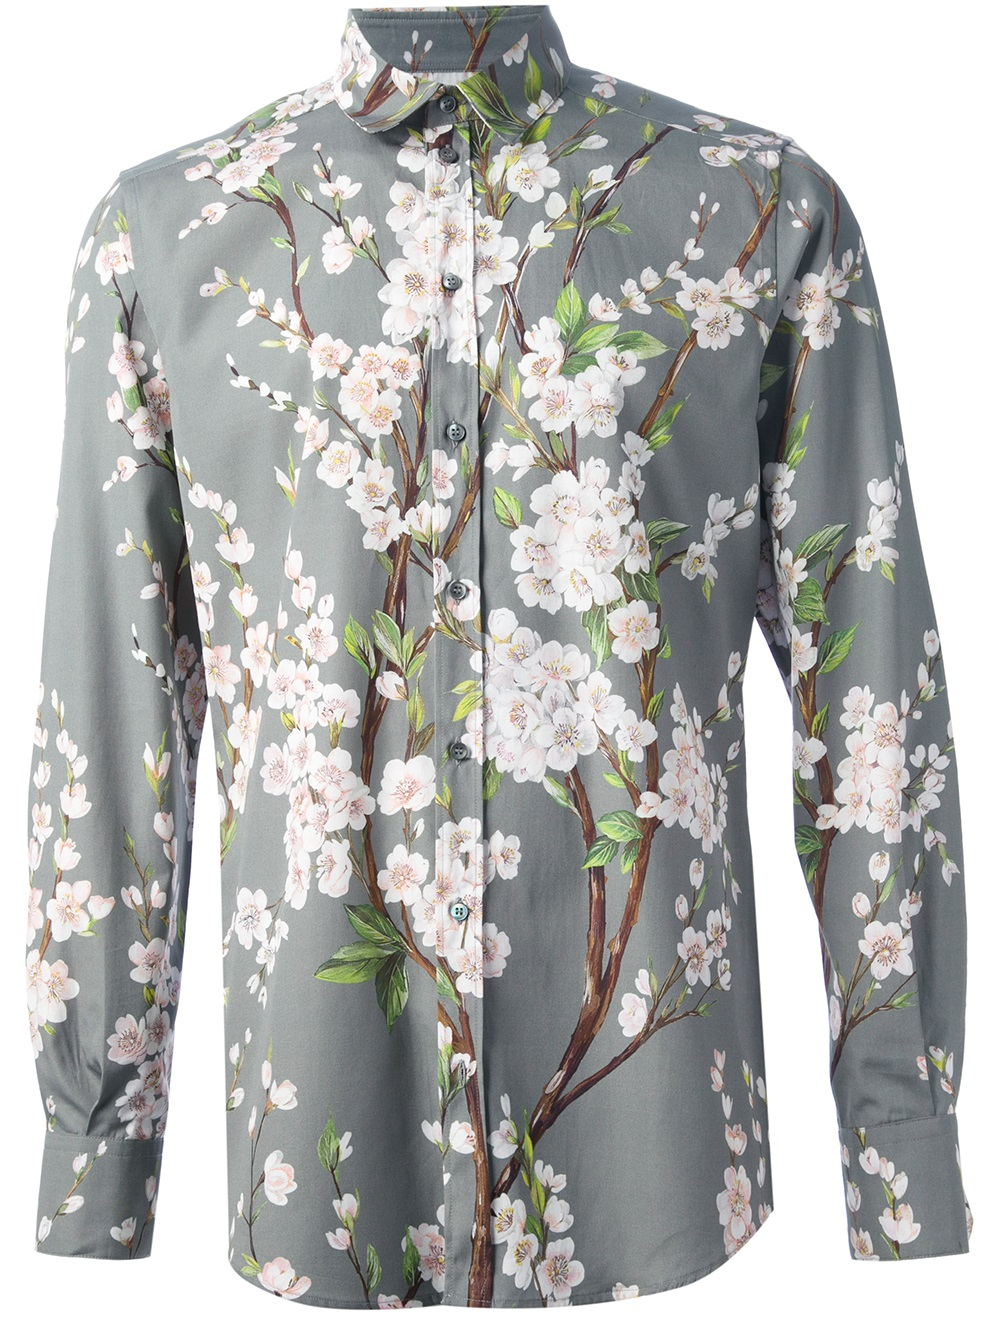 Dolce-gabbana-floral-print-shirt-Chandler-parsons-game-1-nba-playoffs-look